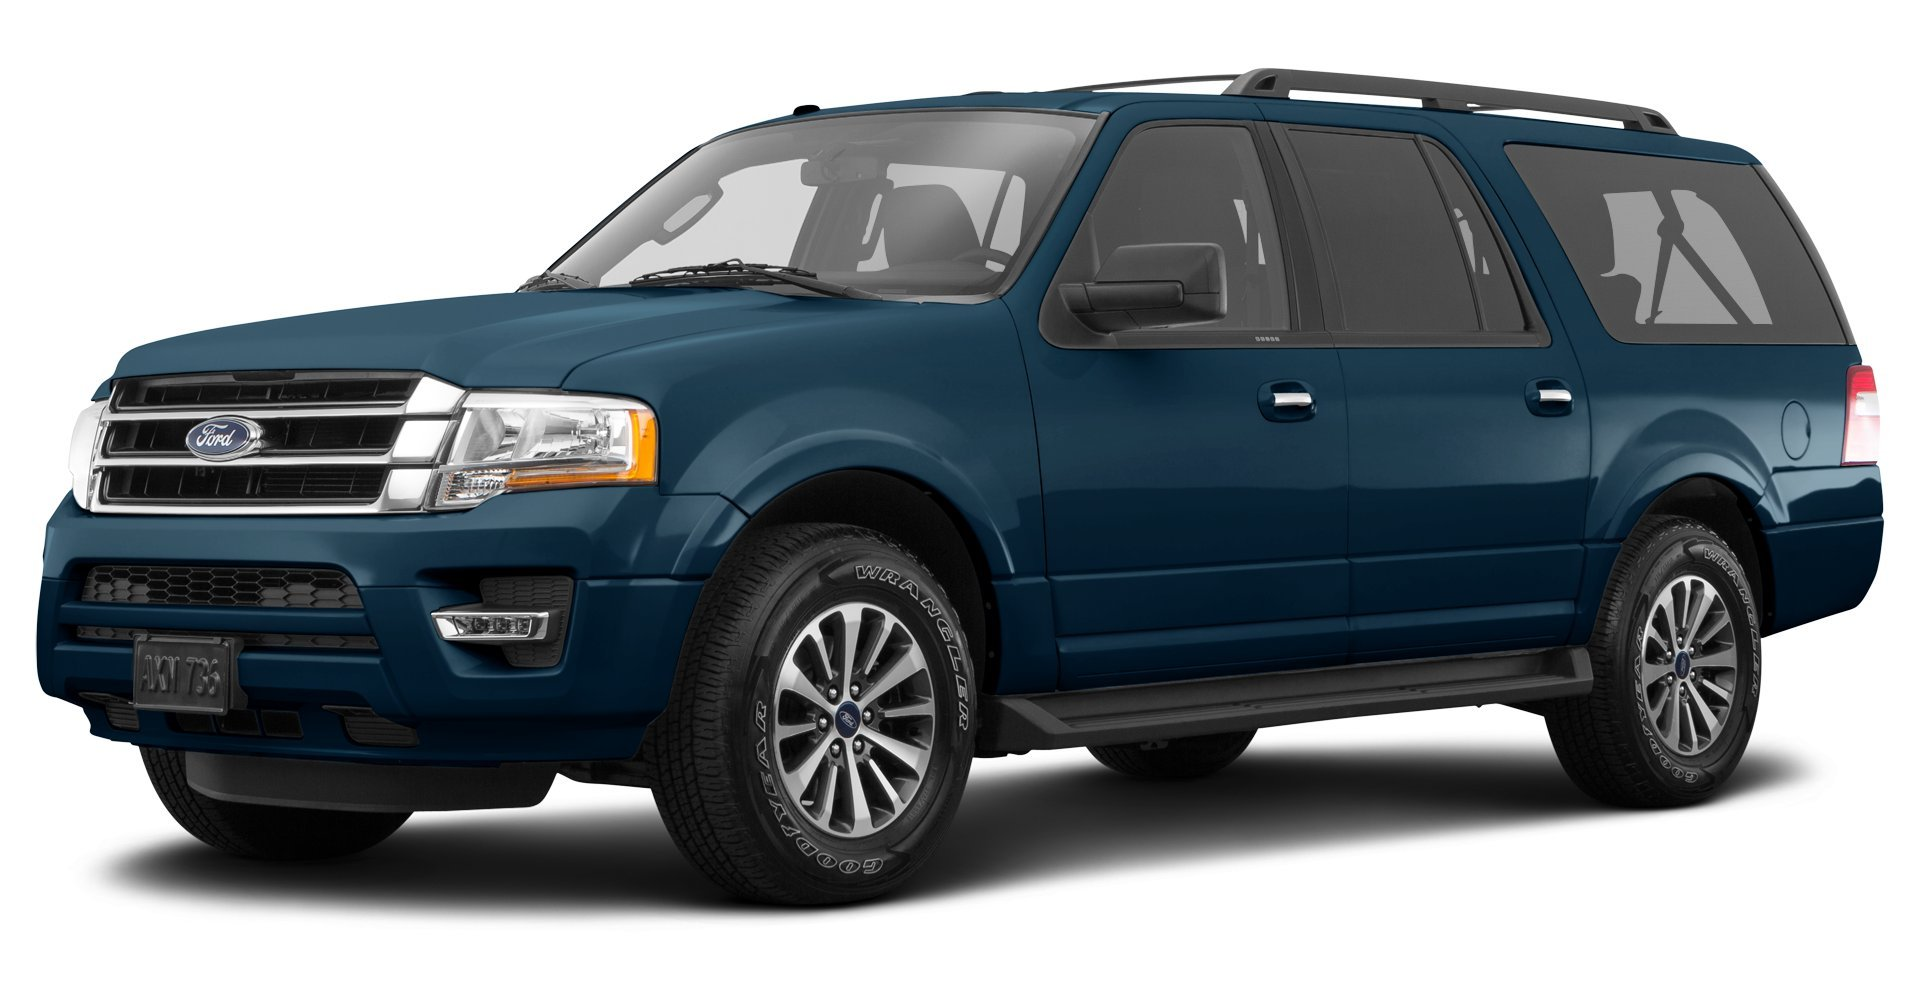 2016 ford expedition reviews images and specs vehicles. Black Bedroom Furniture Sets. Home Design Ideas